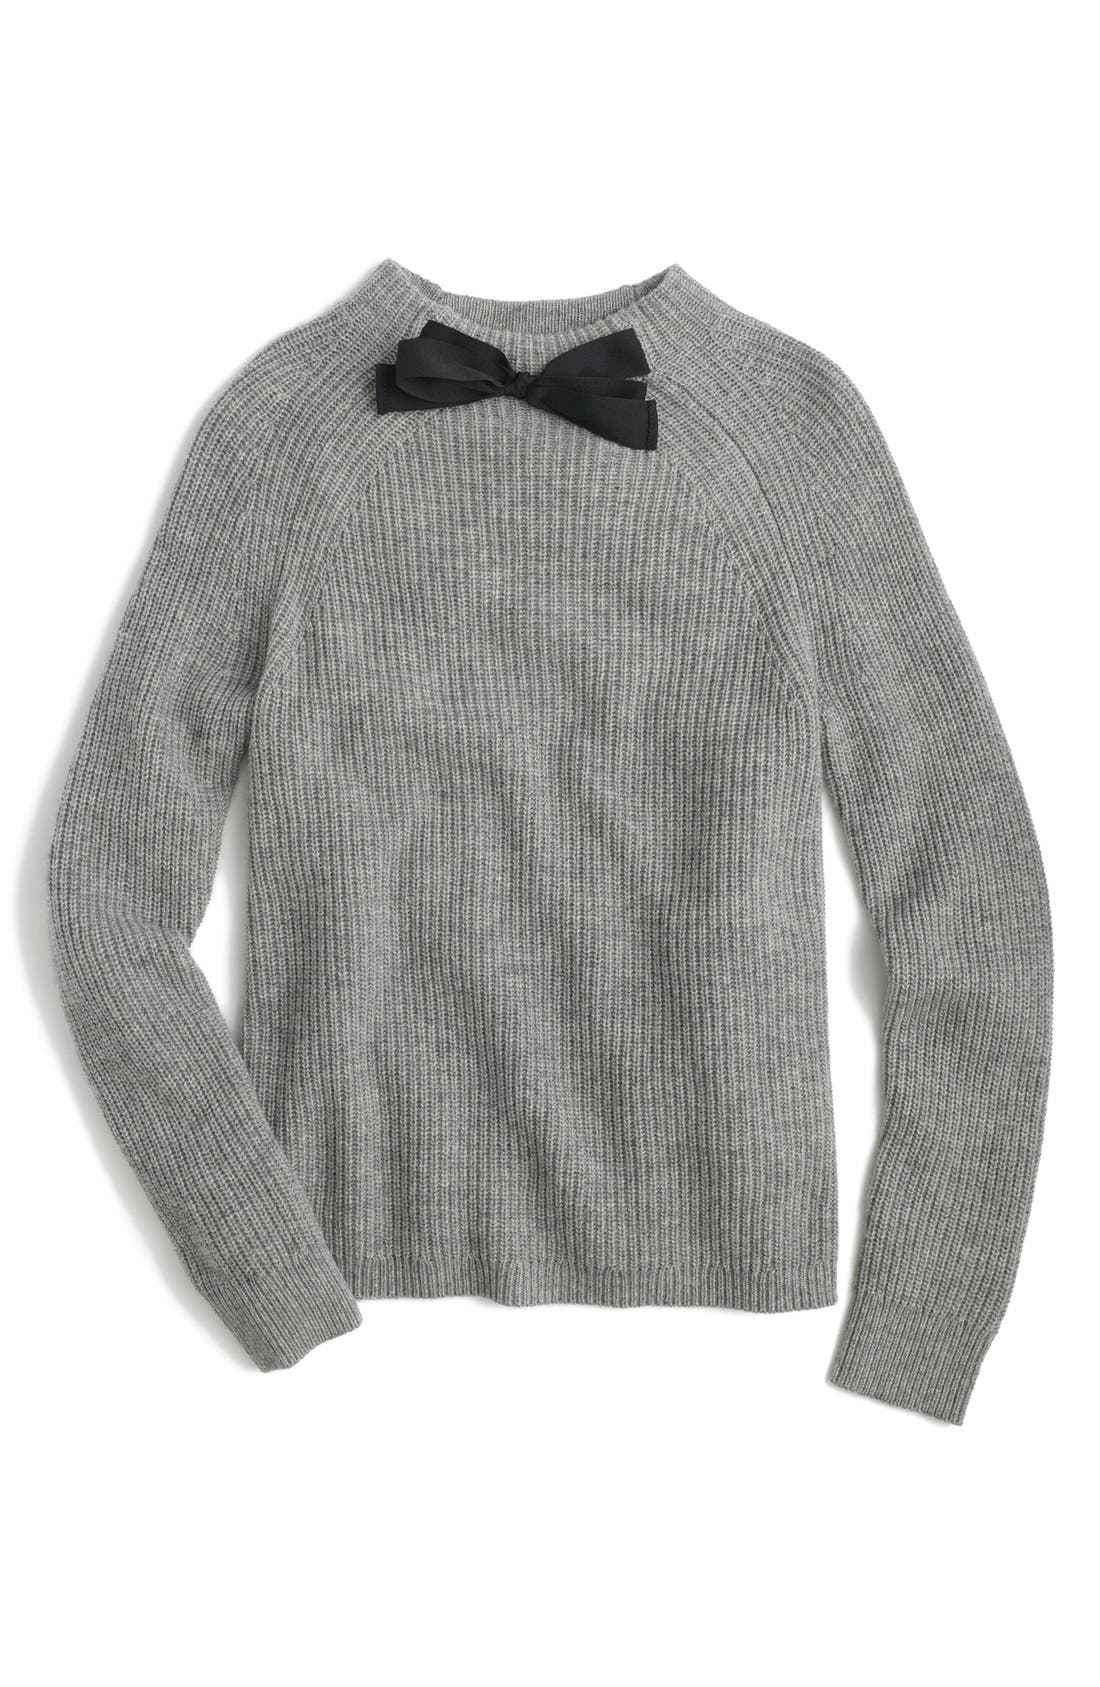 Gayle Tie Neck Sweater,                             Alternate thumbnail 22, color,